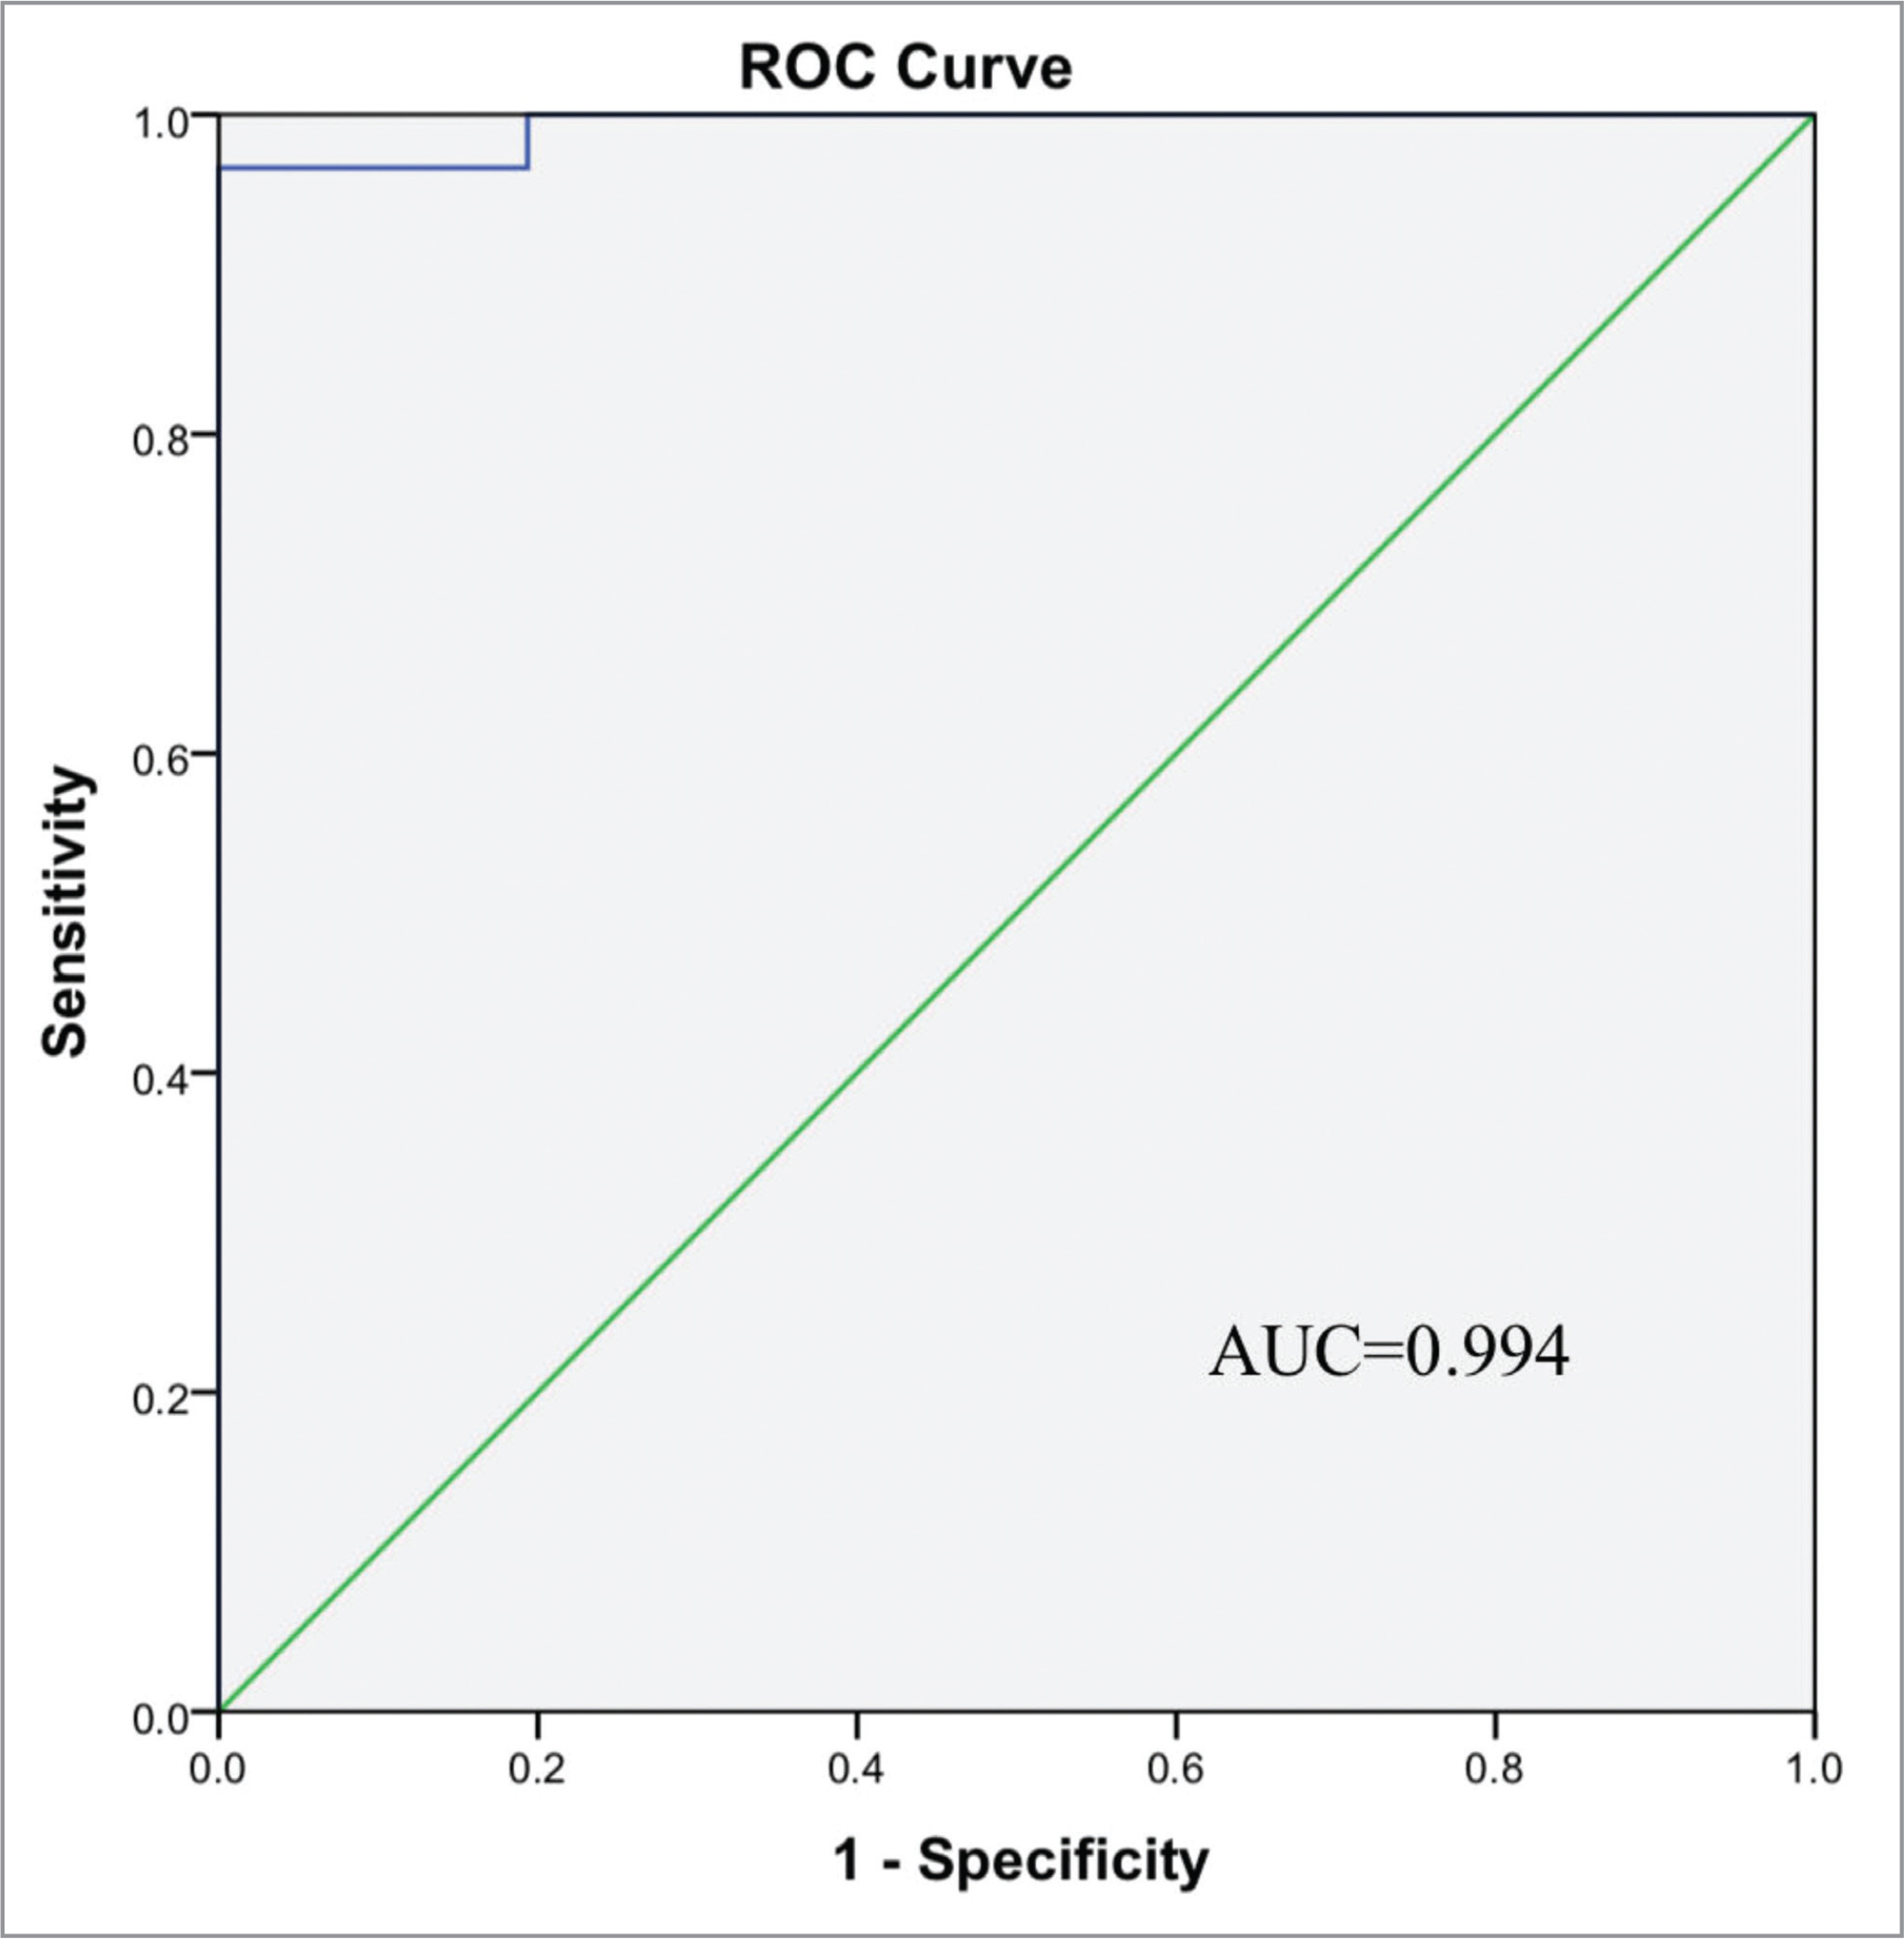 Receiver operating characteristic (ROC) curve of mean vessel tortuosity (MVT) for all patients. The sensitivity was 96.7%, and the specificity was 100% for a MVT score of 1.124. The area under the ROC curve (AUC) was 0.994.